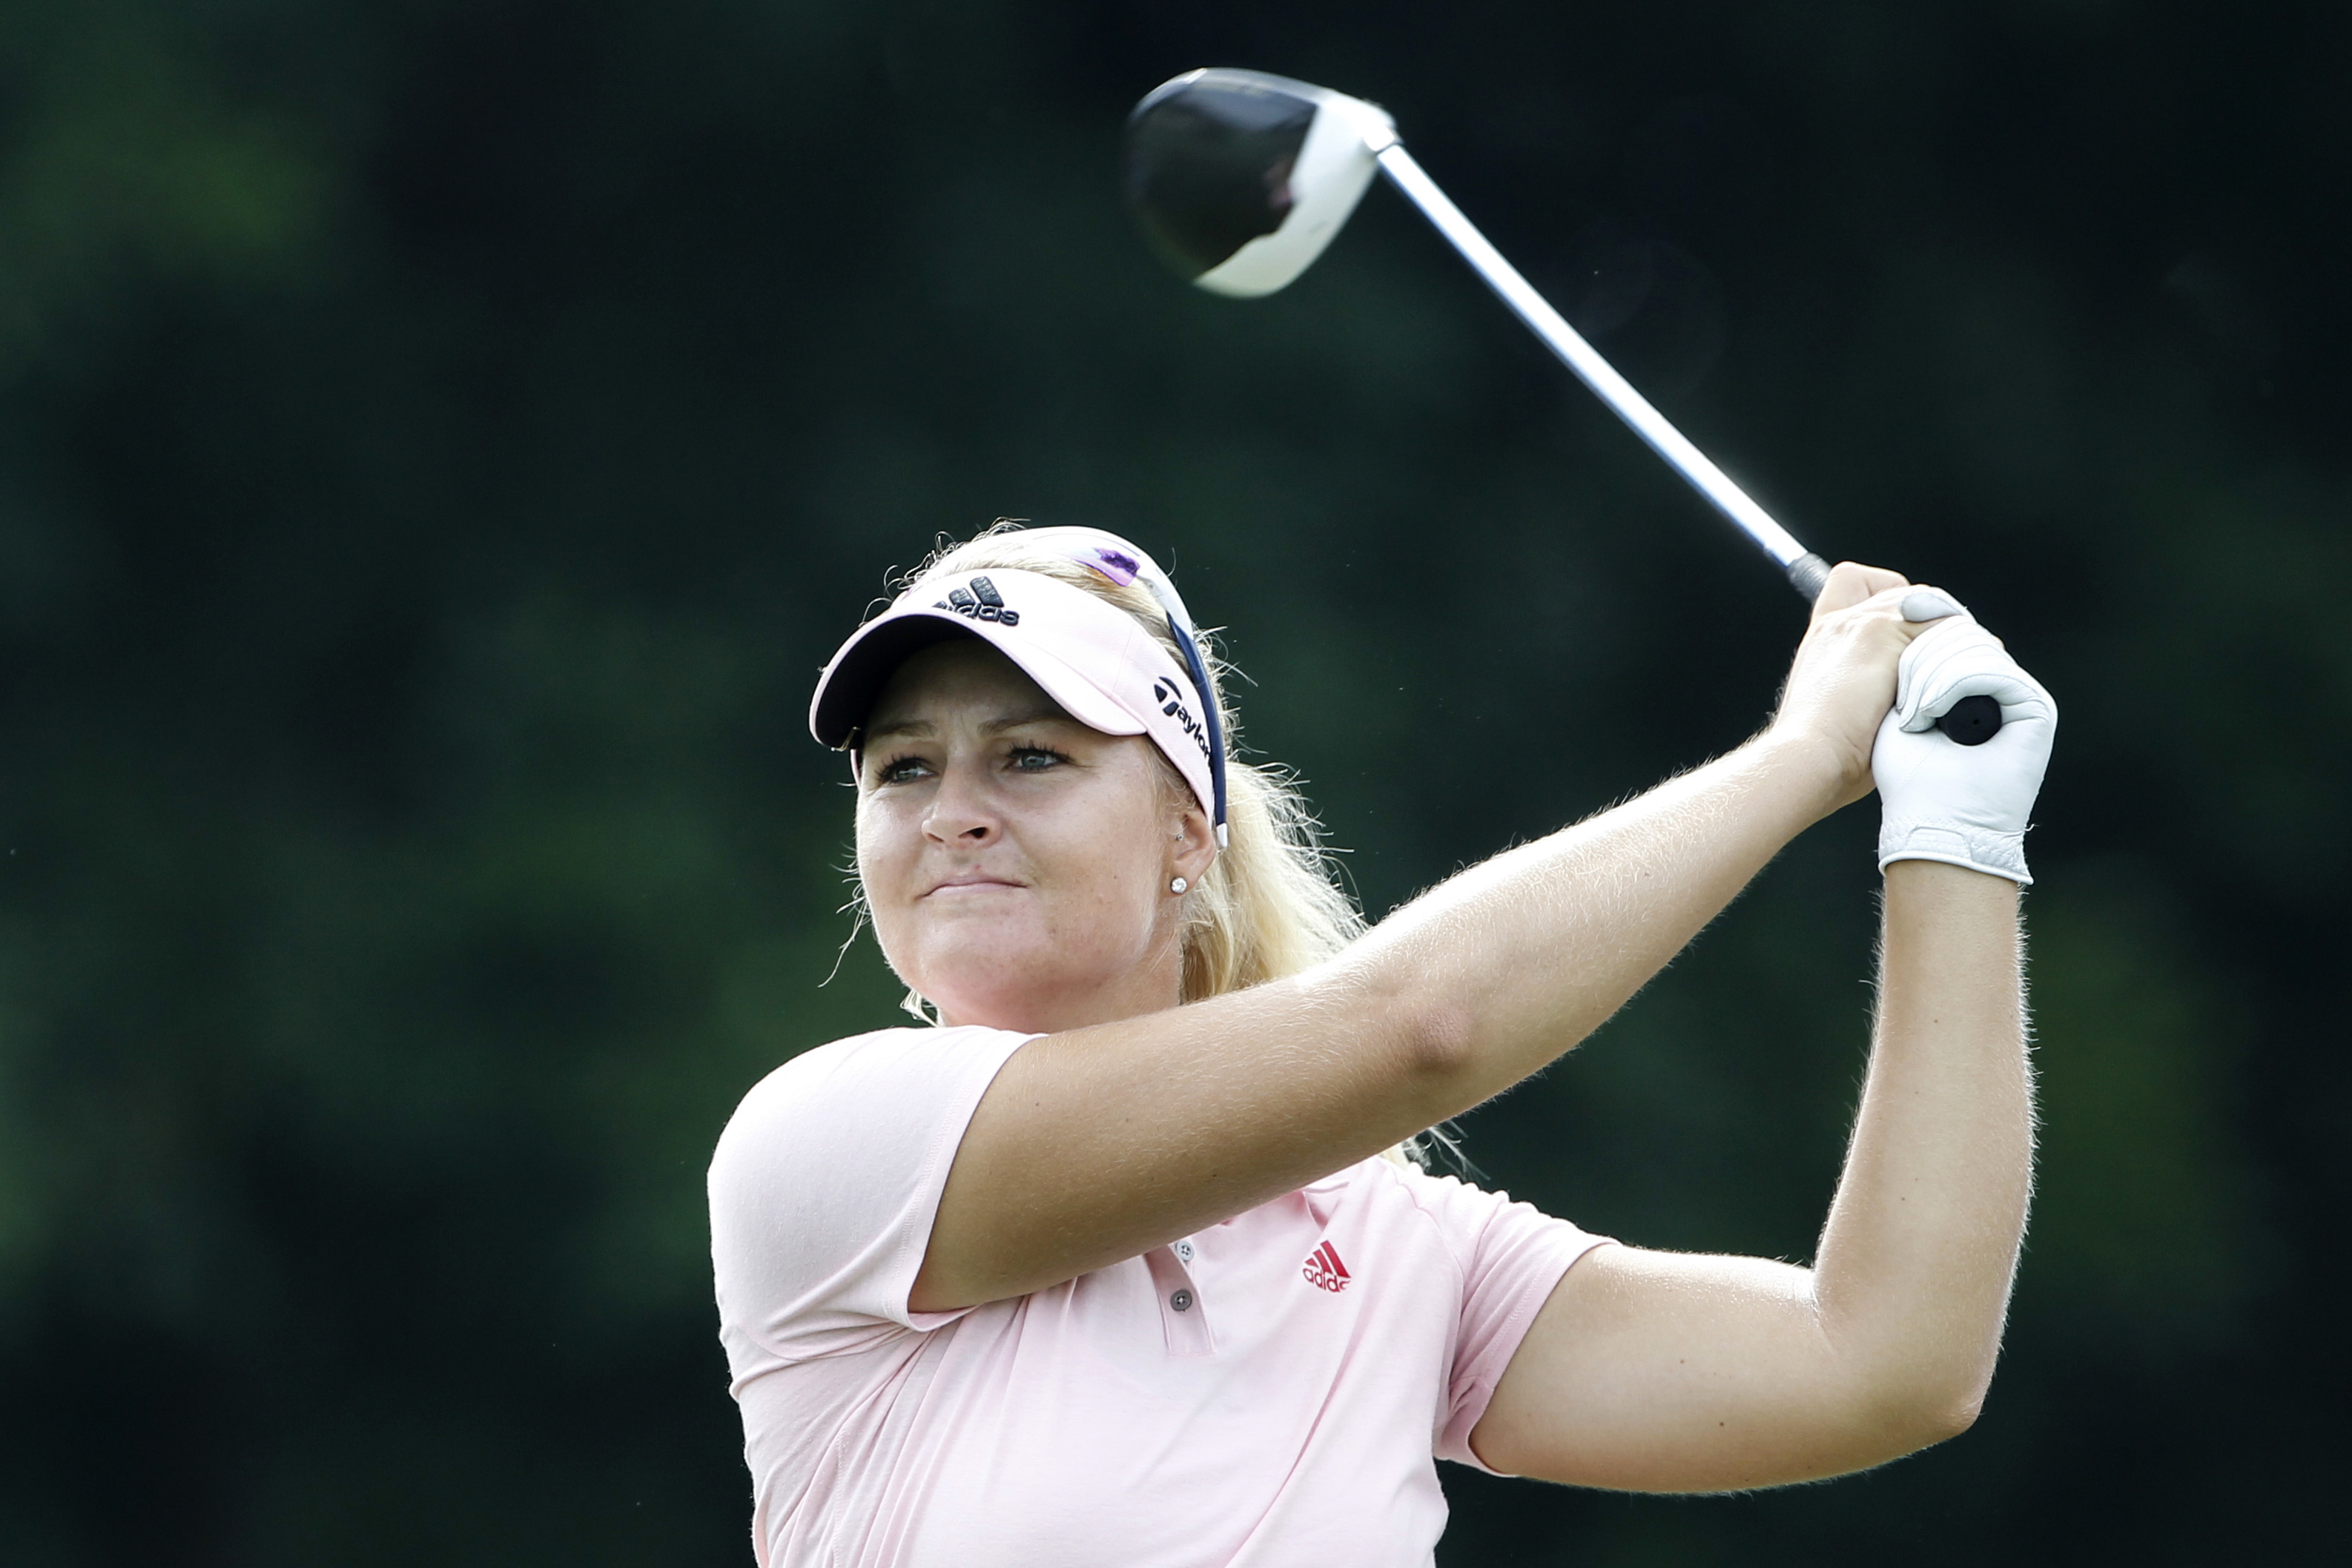 Anna Nordqvist of Sweden follows her shot on the second hole during the third round of the LPGA golf tournament at Tournament Players Club in Kuala Lumpur, Malaysia, Saturday, Oct. 29, 2016. (AP Photo/Joshua Paul)